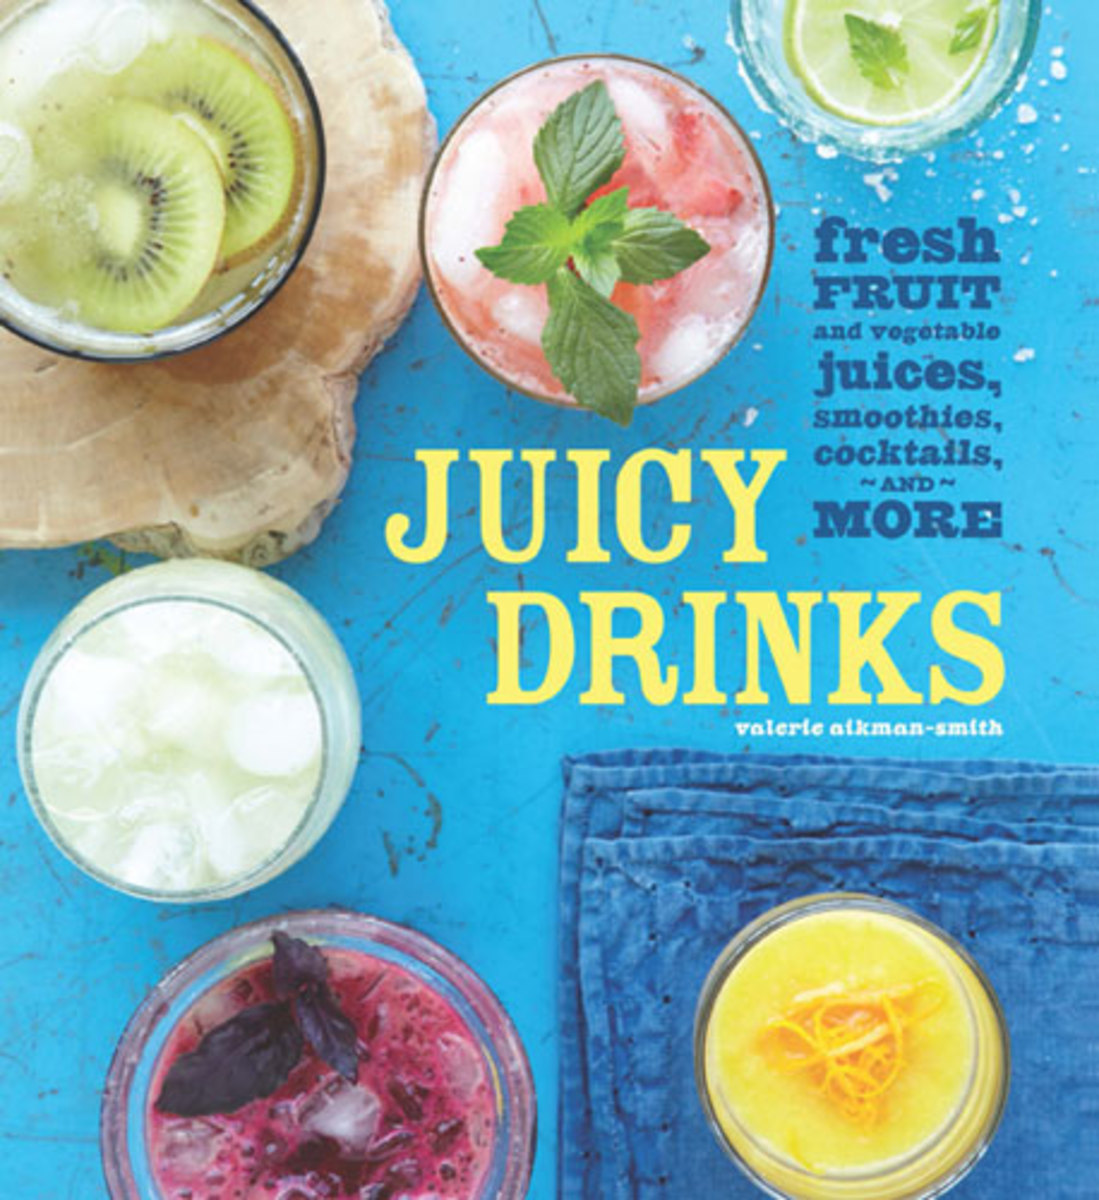 JuicyDrinks_Cover1